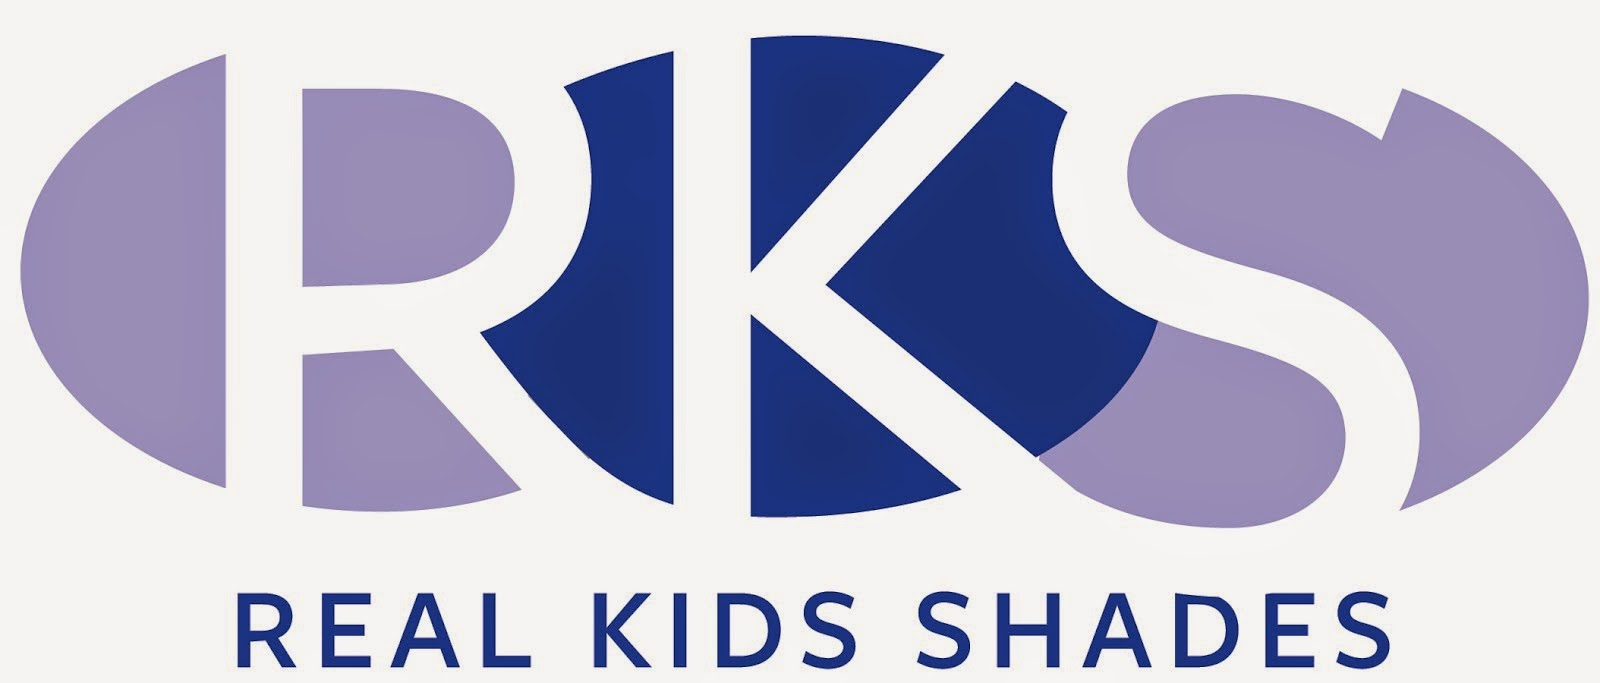 Real Kids Shades